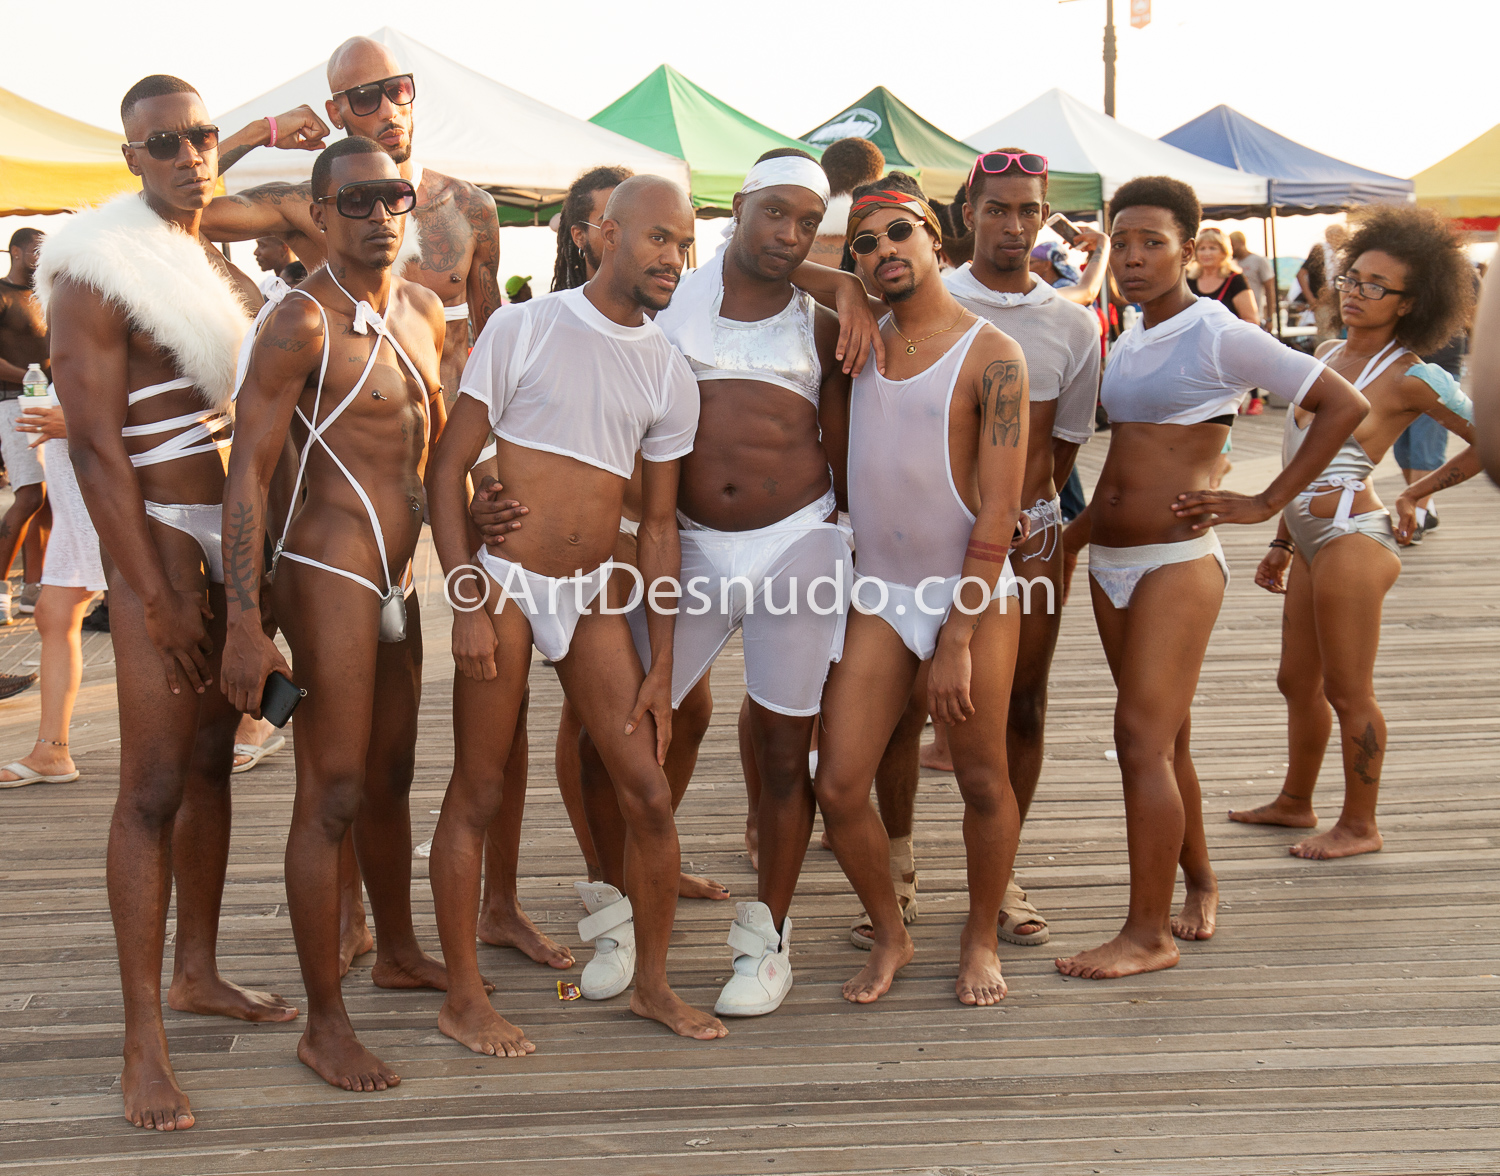 August 2017. Coney Island. Brooklyn, NYC – Pride at the Beach. NYC Black Pride.  Photo by ArtDesnudo.com